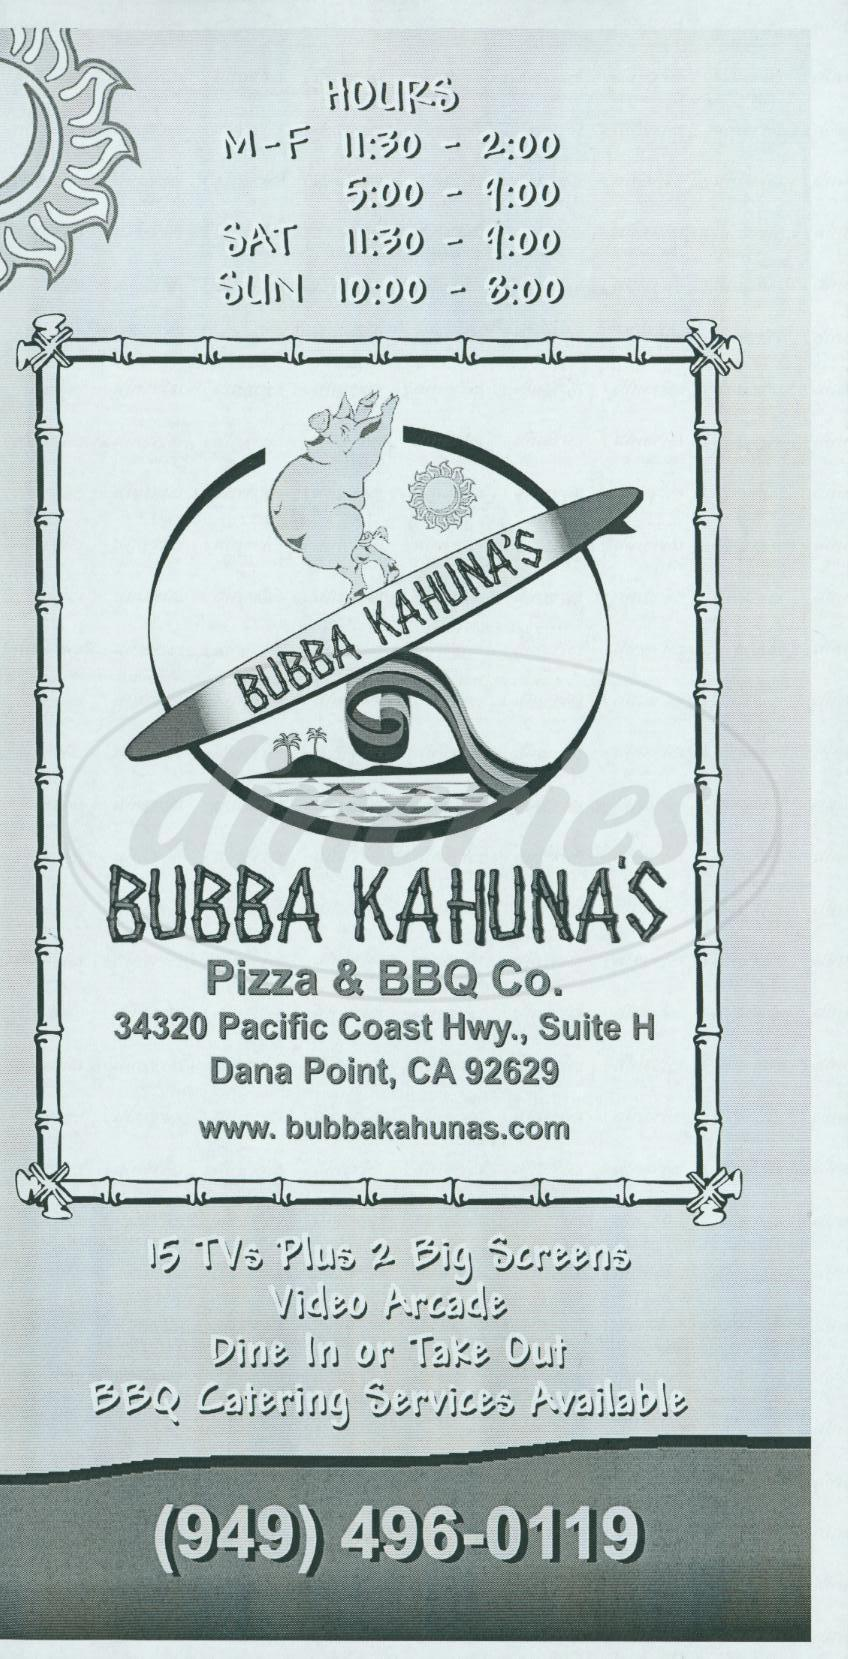 menu for Bubba Kahuna's